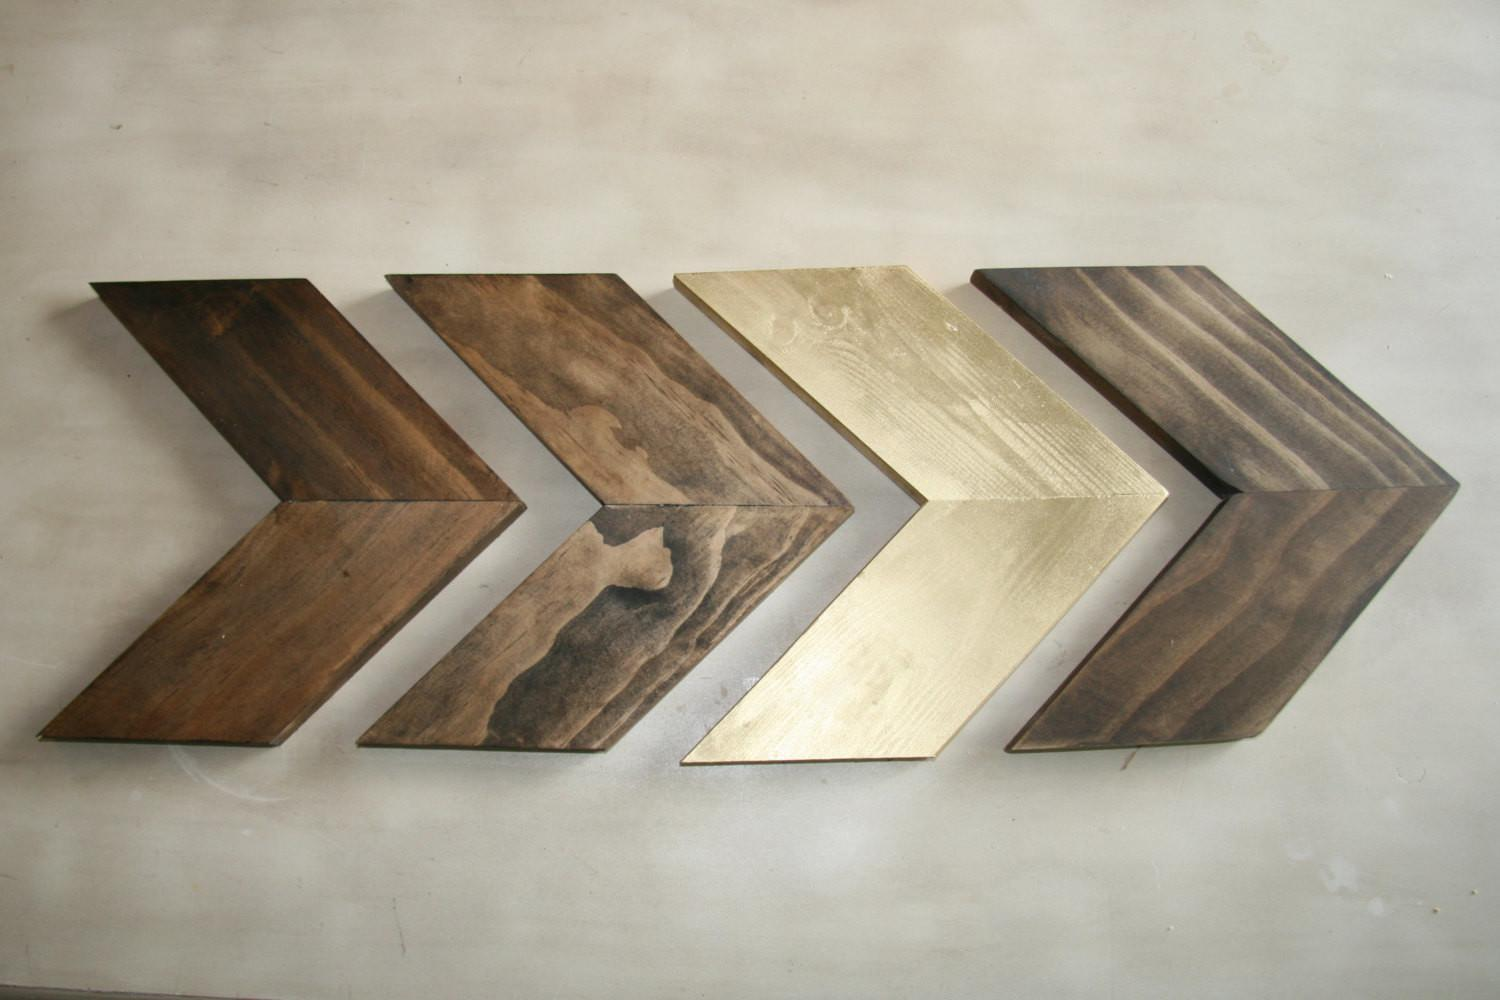 Wood Chevron Arrows Arrow Wall Art Home Decor